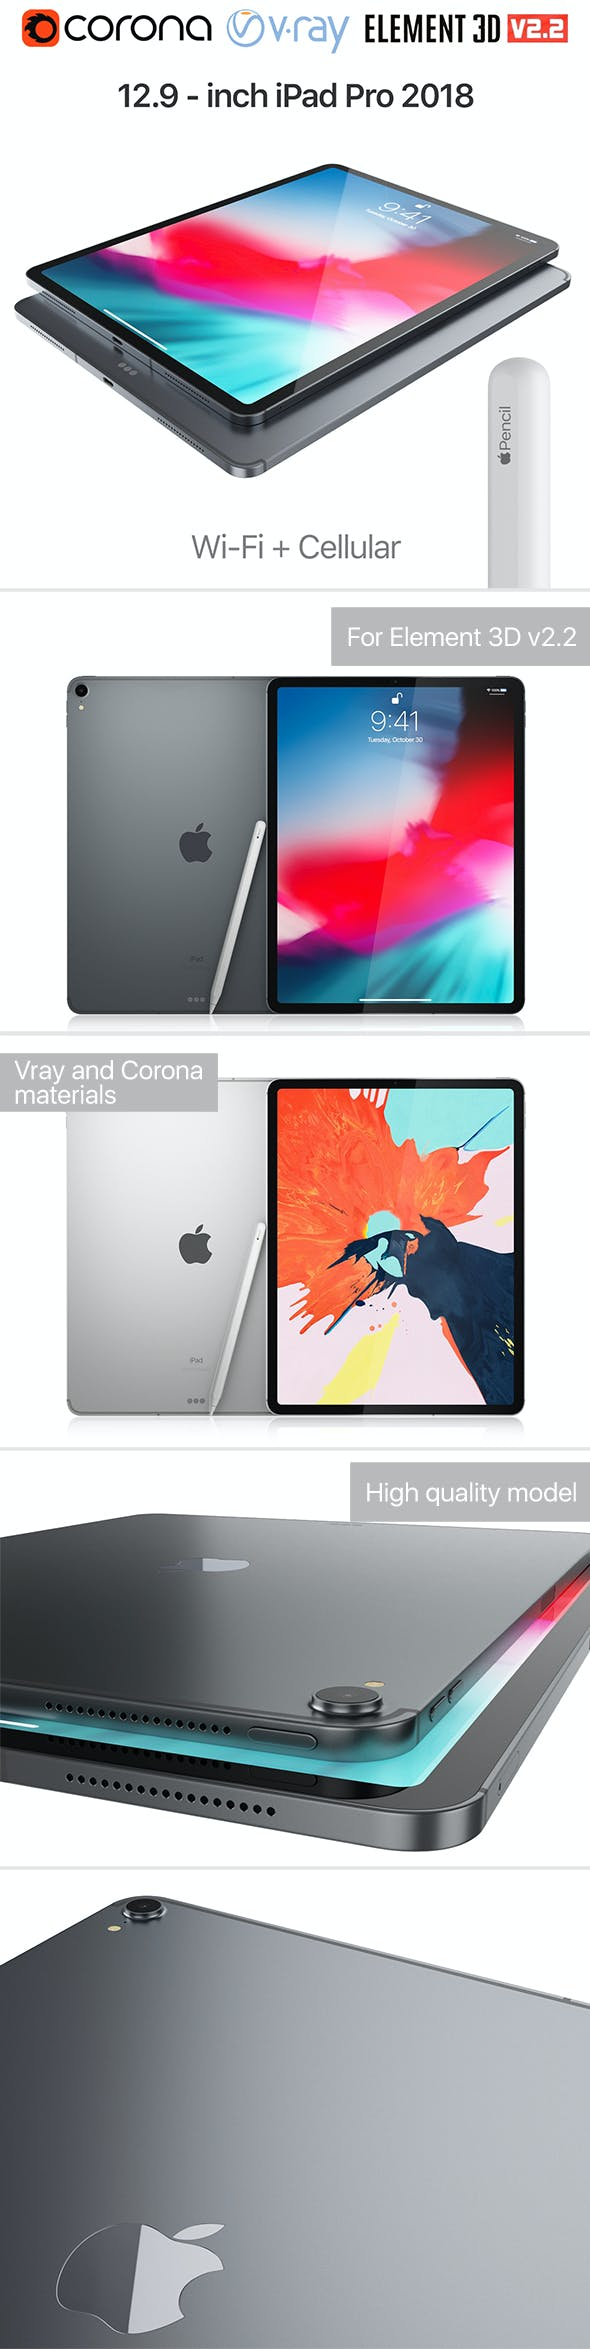 Apple iPad Pro 12.9 inch Wi-Fi + Cellular 2018 and New Apple Pencil - 3DOcean Item for Sale